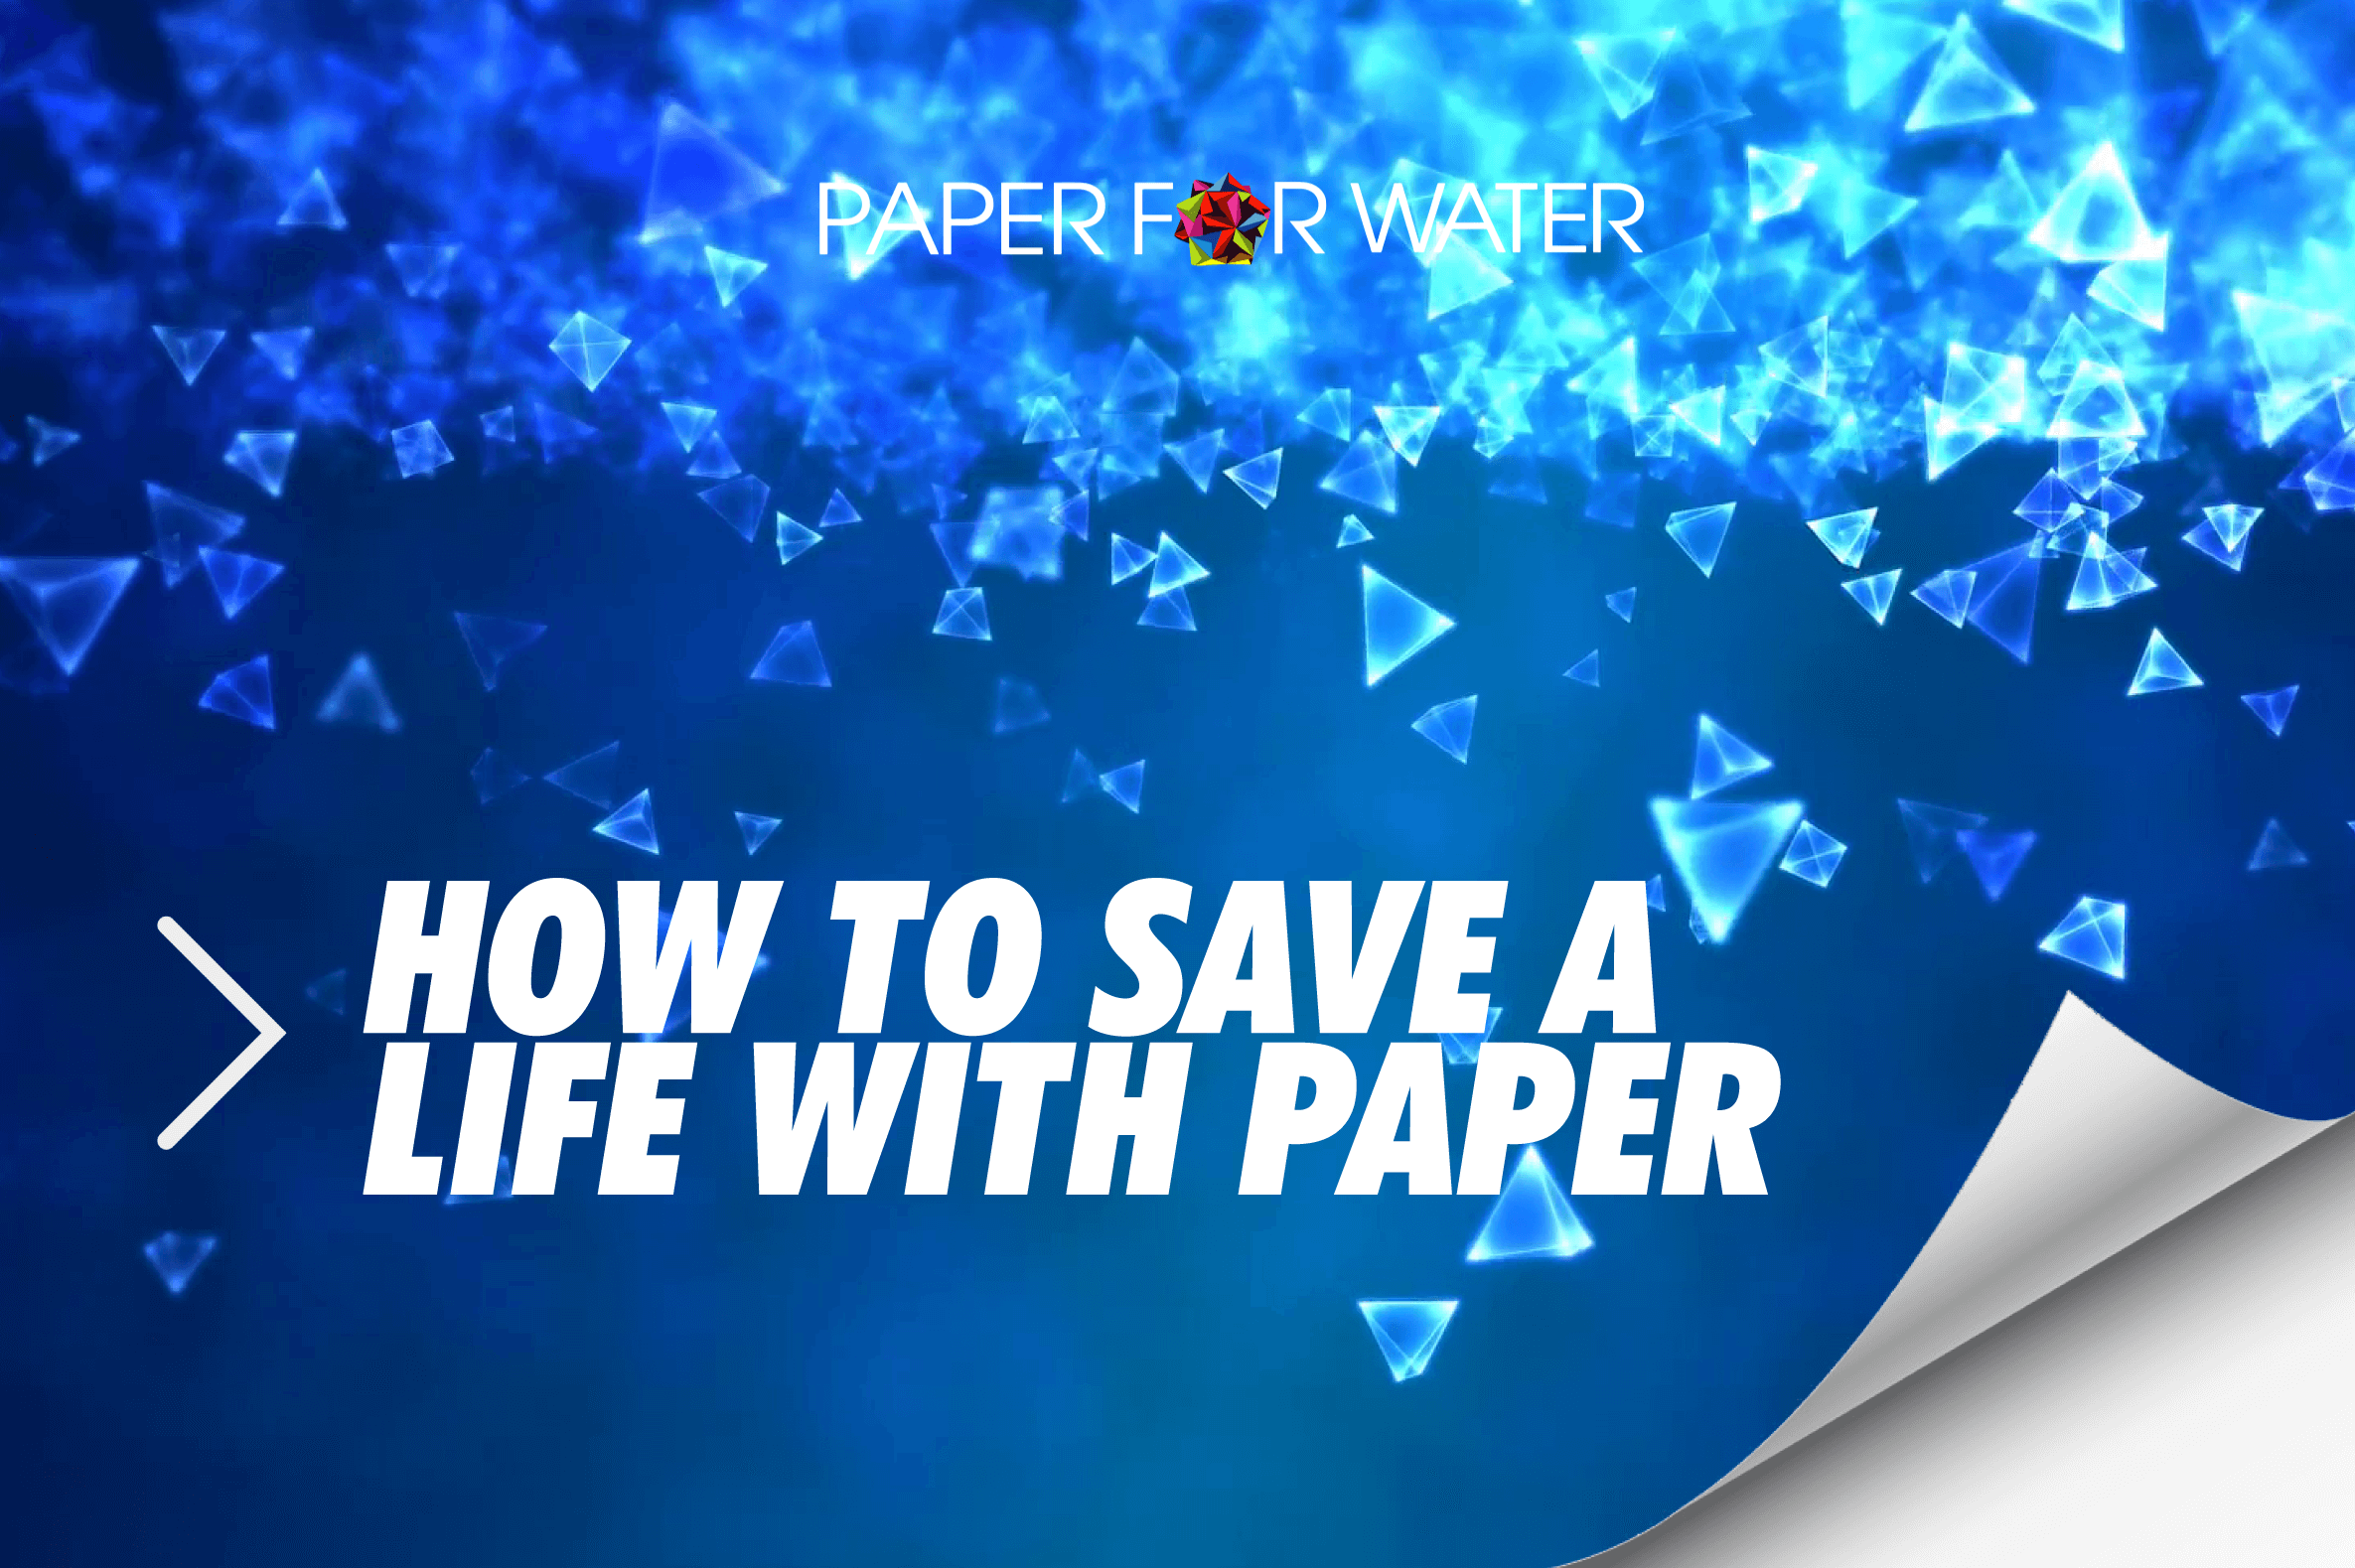 Paper for water how to make 1